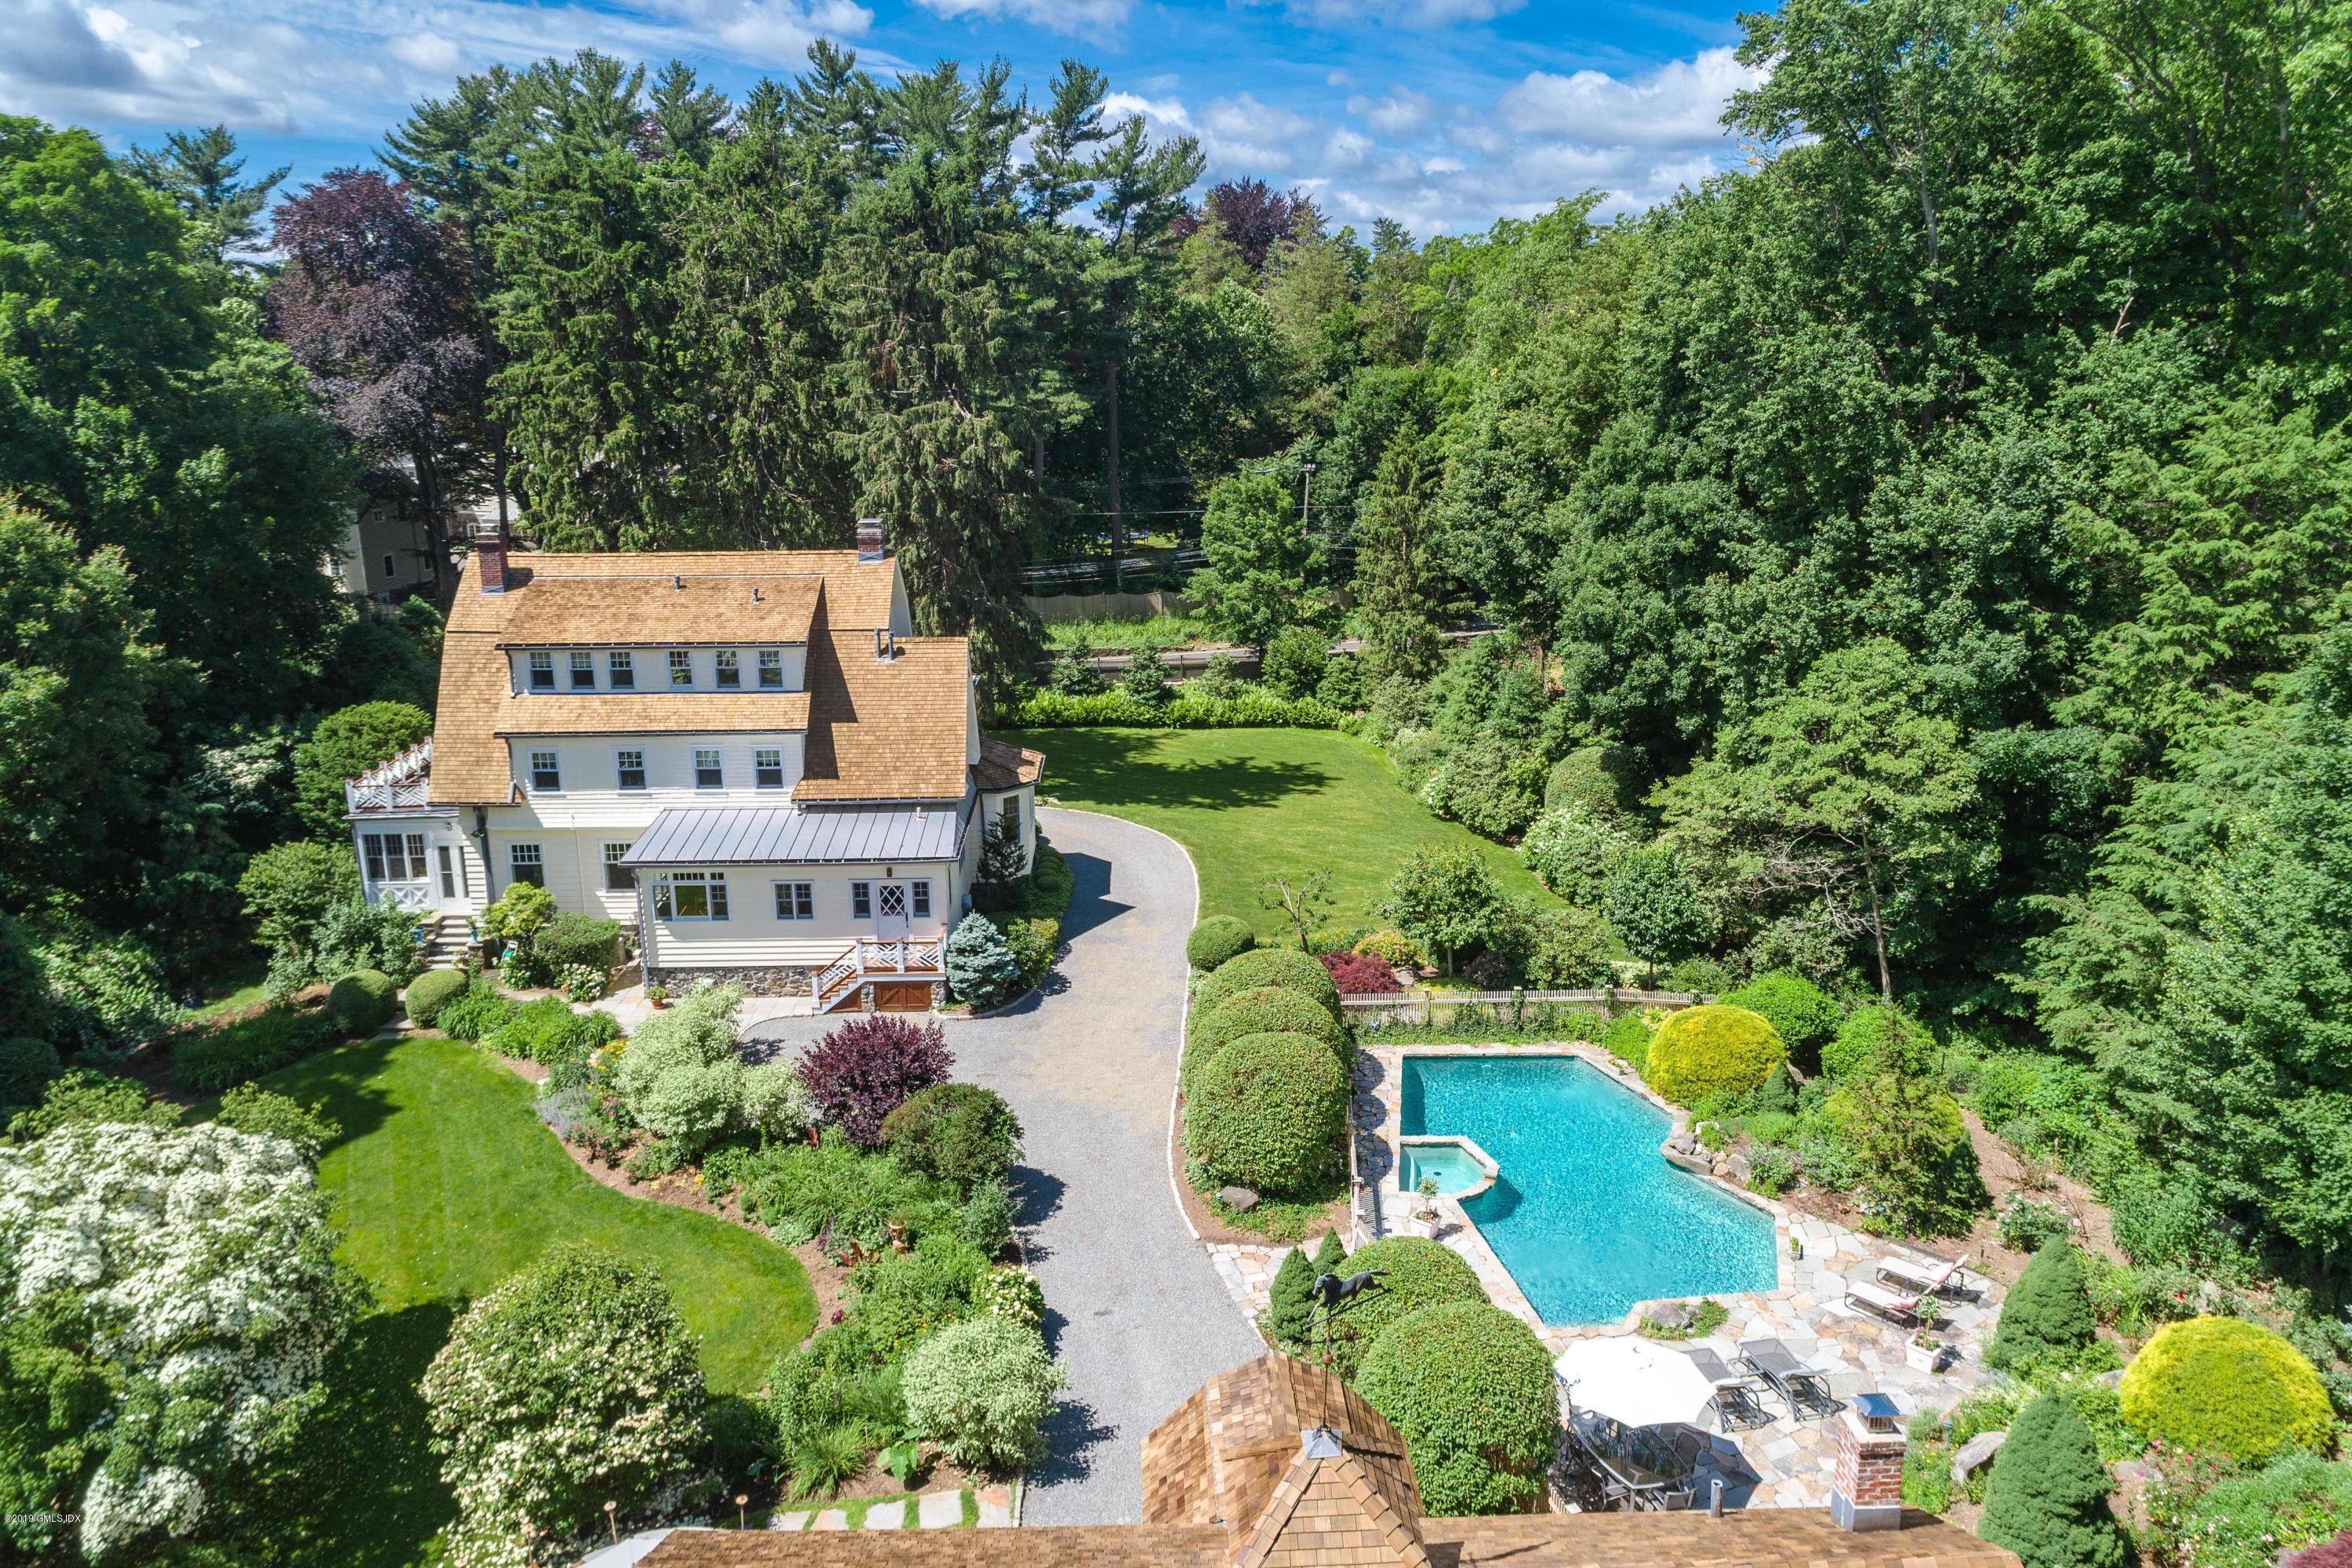 63 Glenville Road, Greenwich, CT 06831